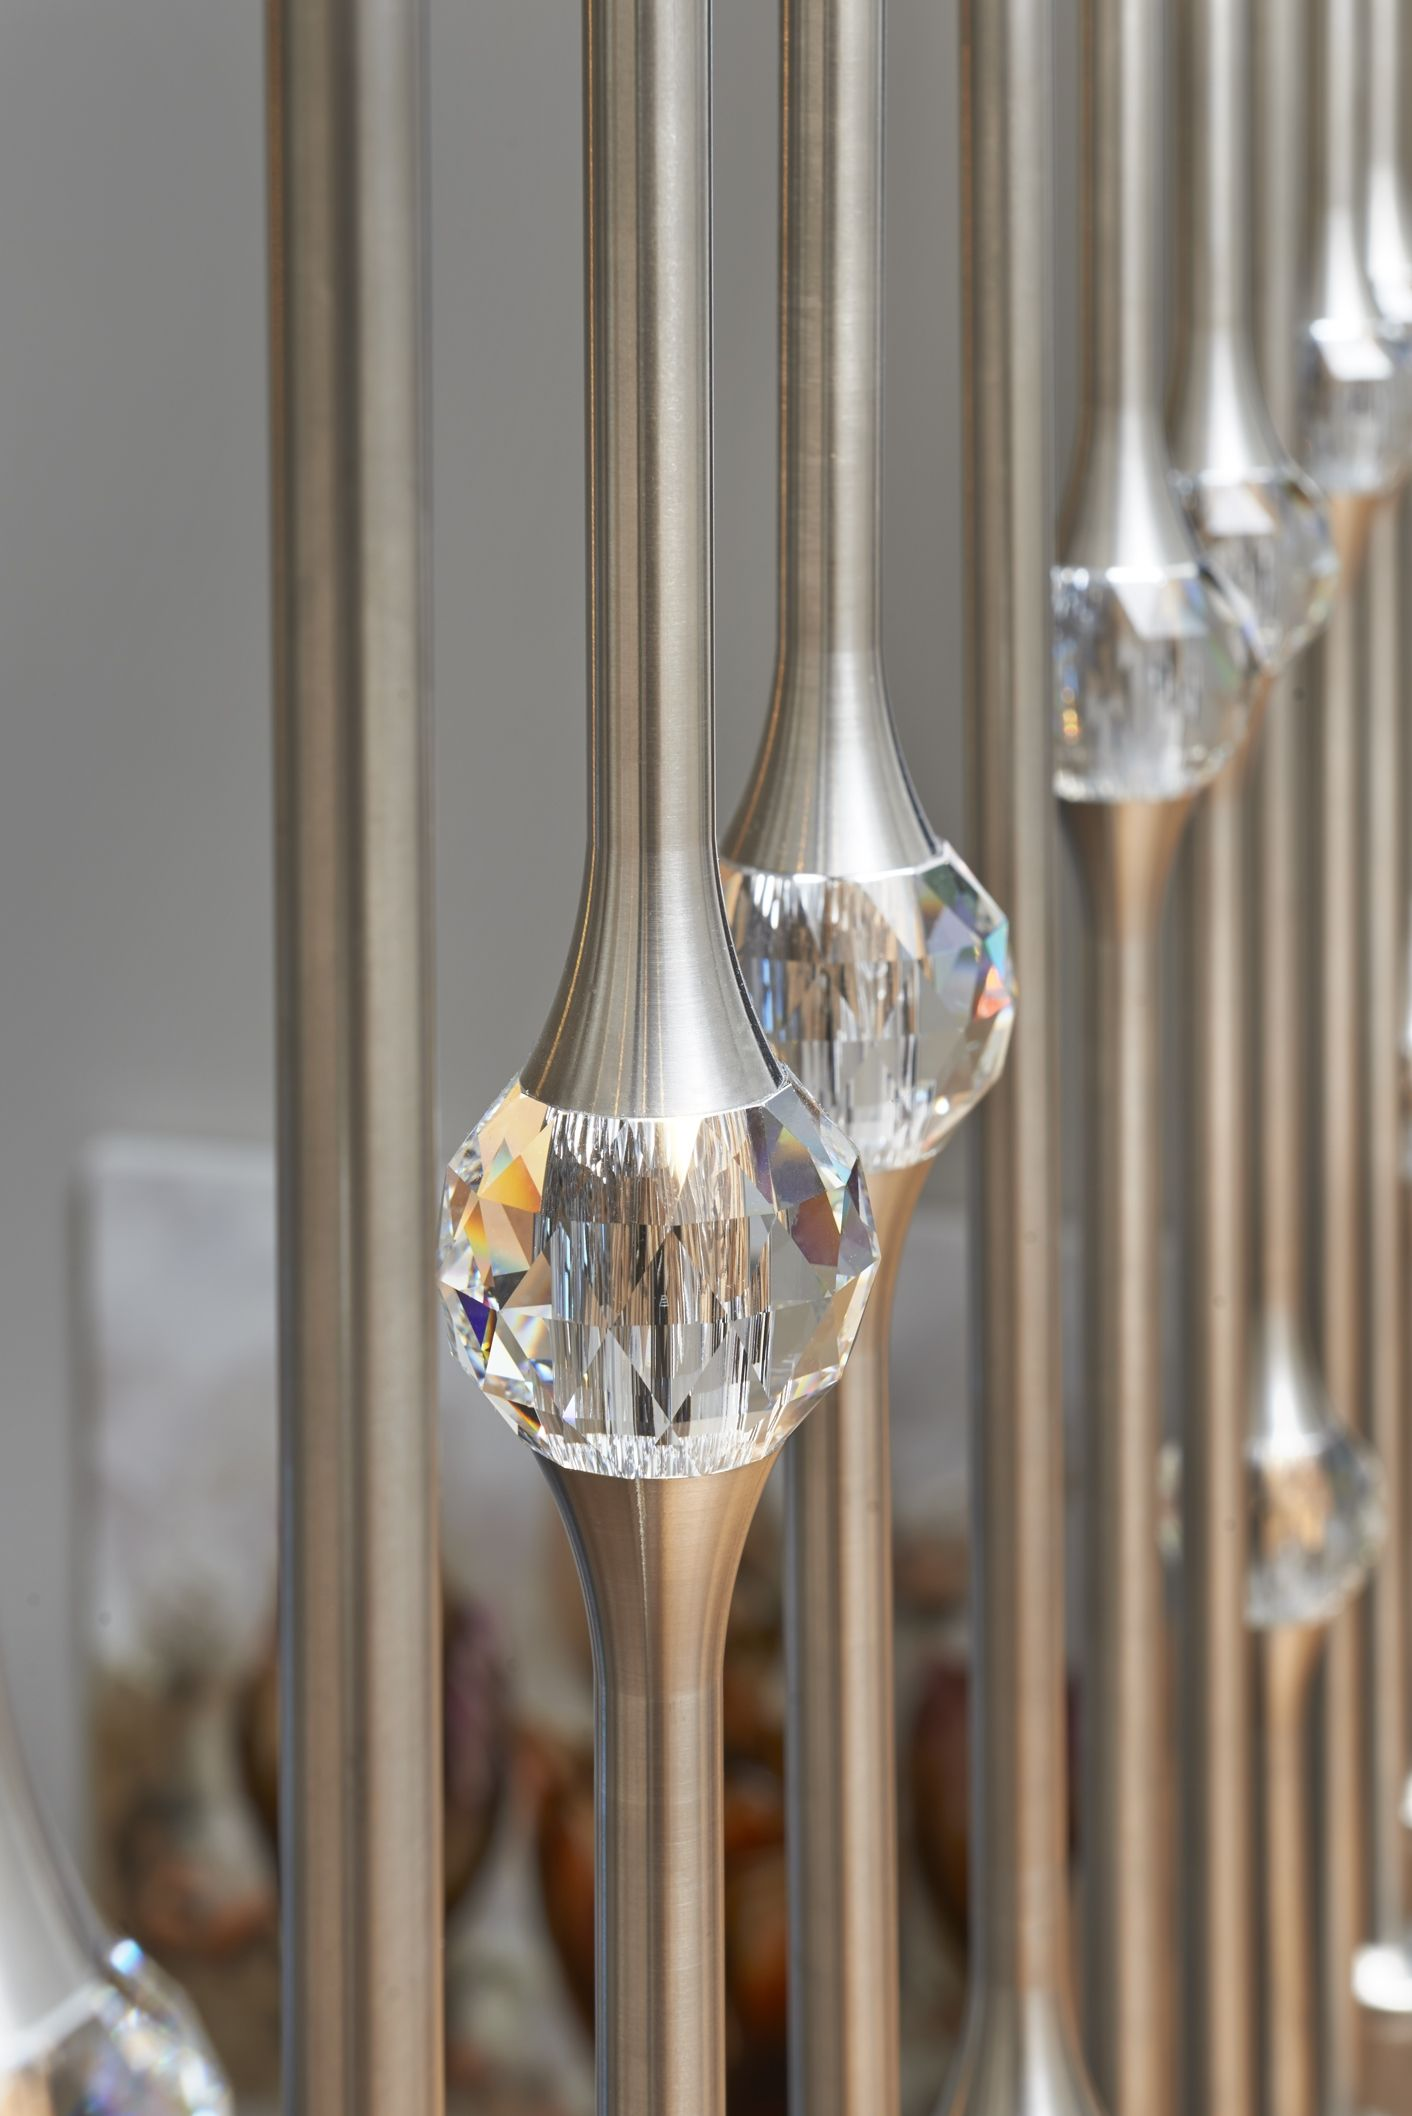 Stainless steel ornaments - Stainless Steel Baluster With Ornament Google Search